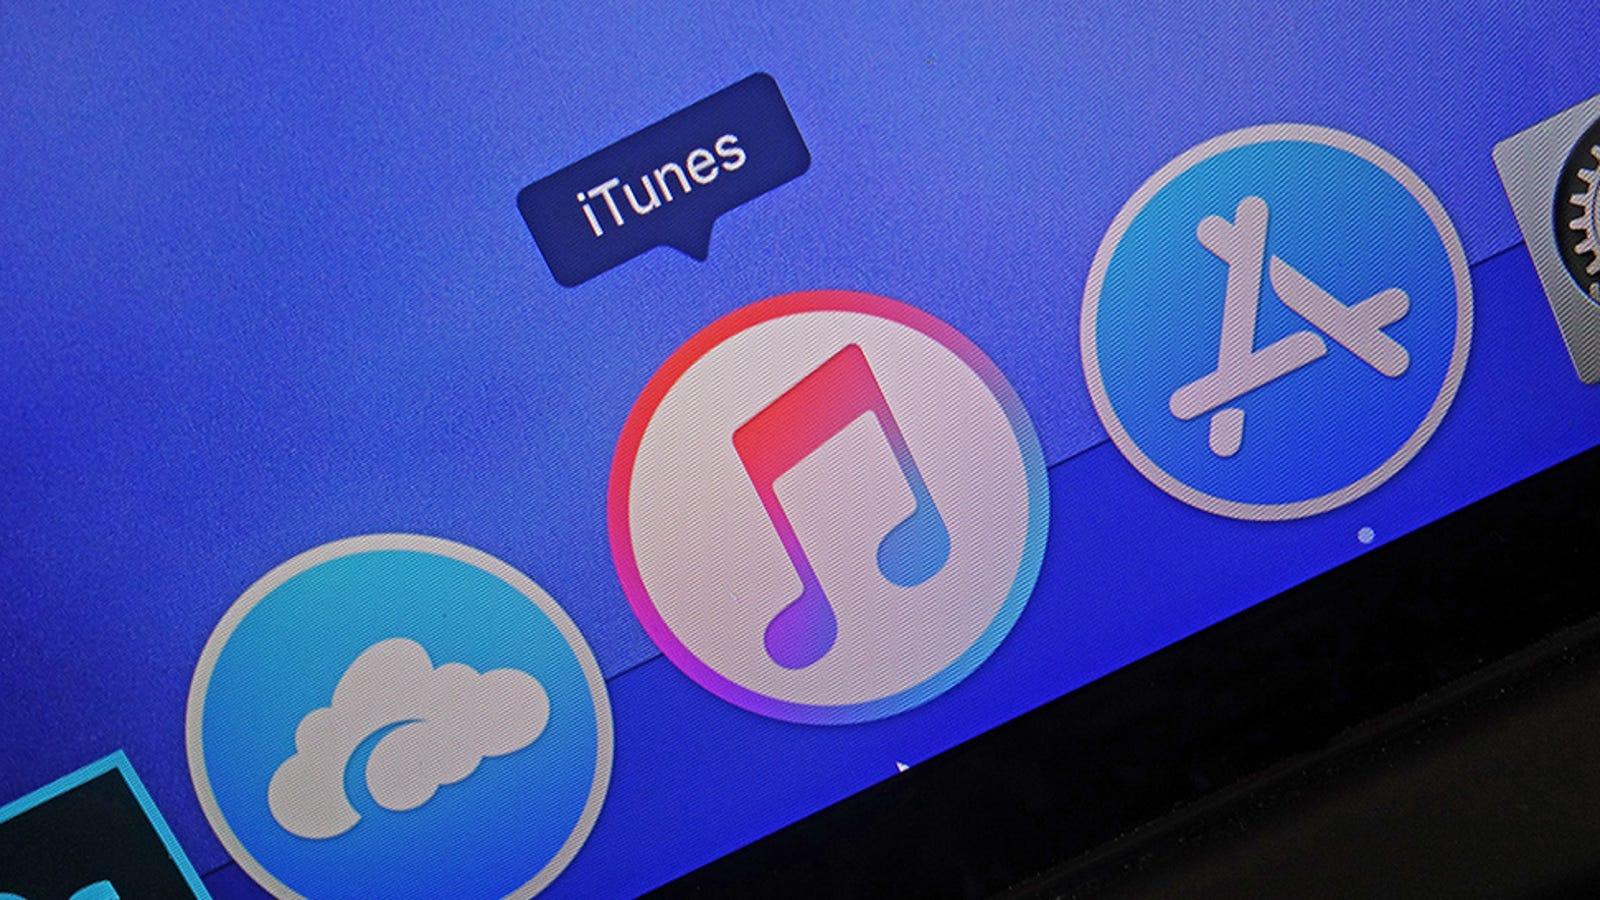 How To Customize Apple S Dock And Window S Start Menu To Make Your